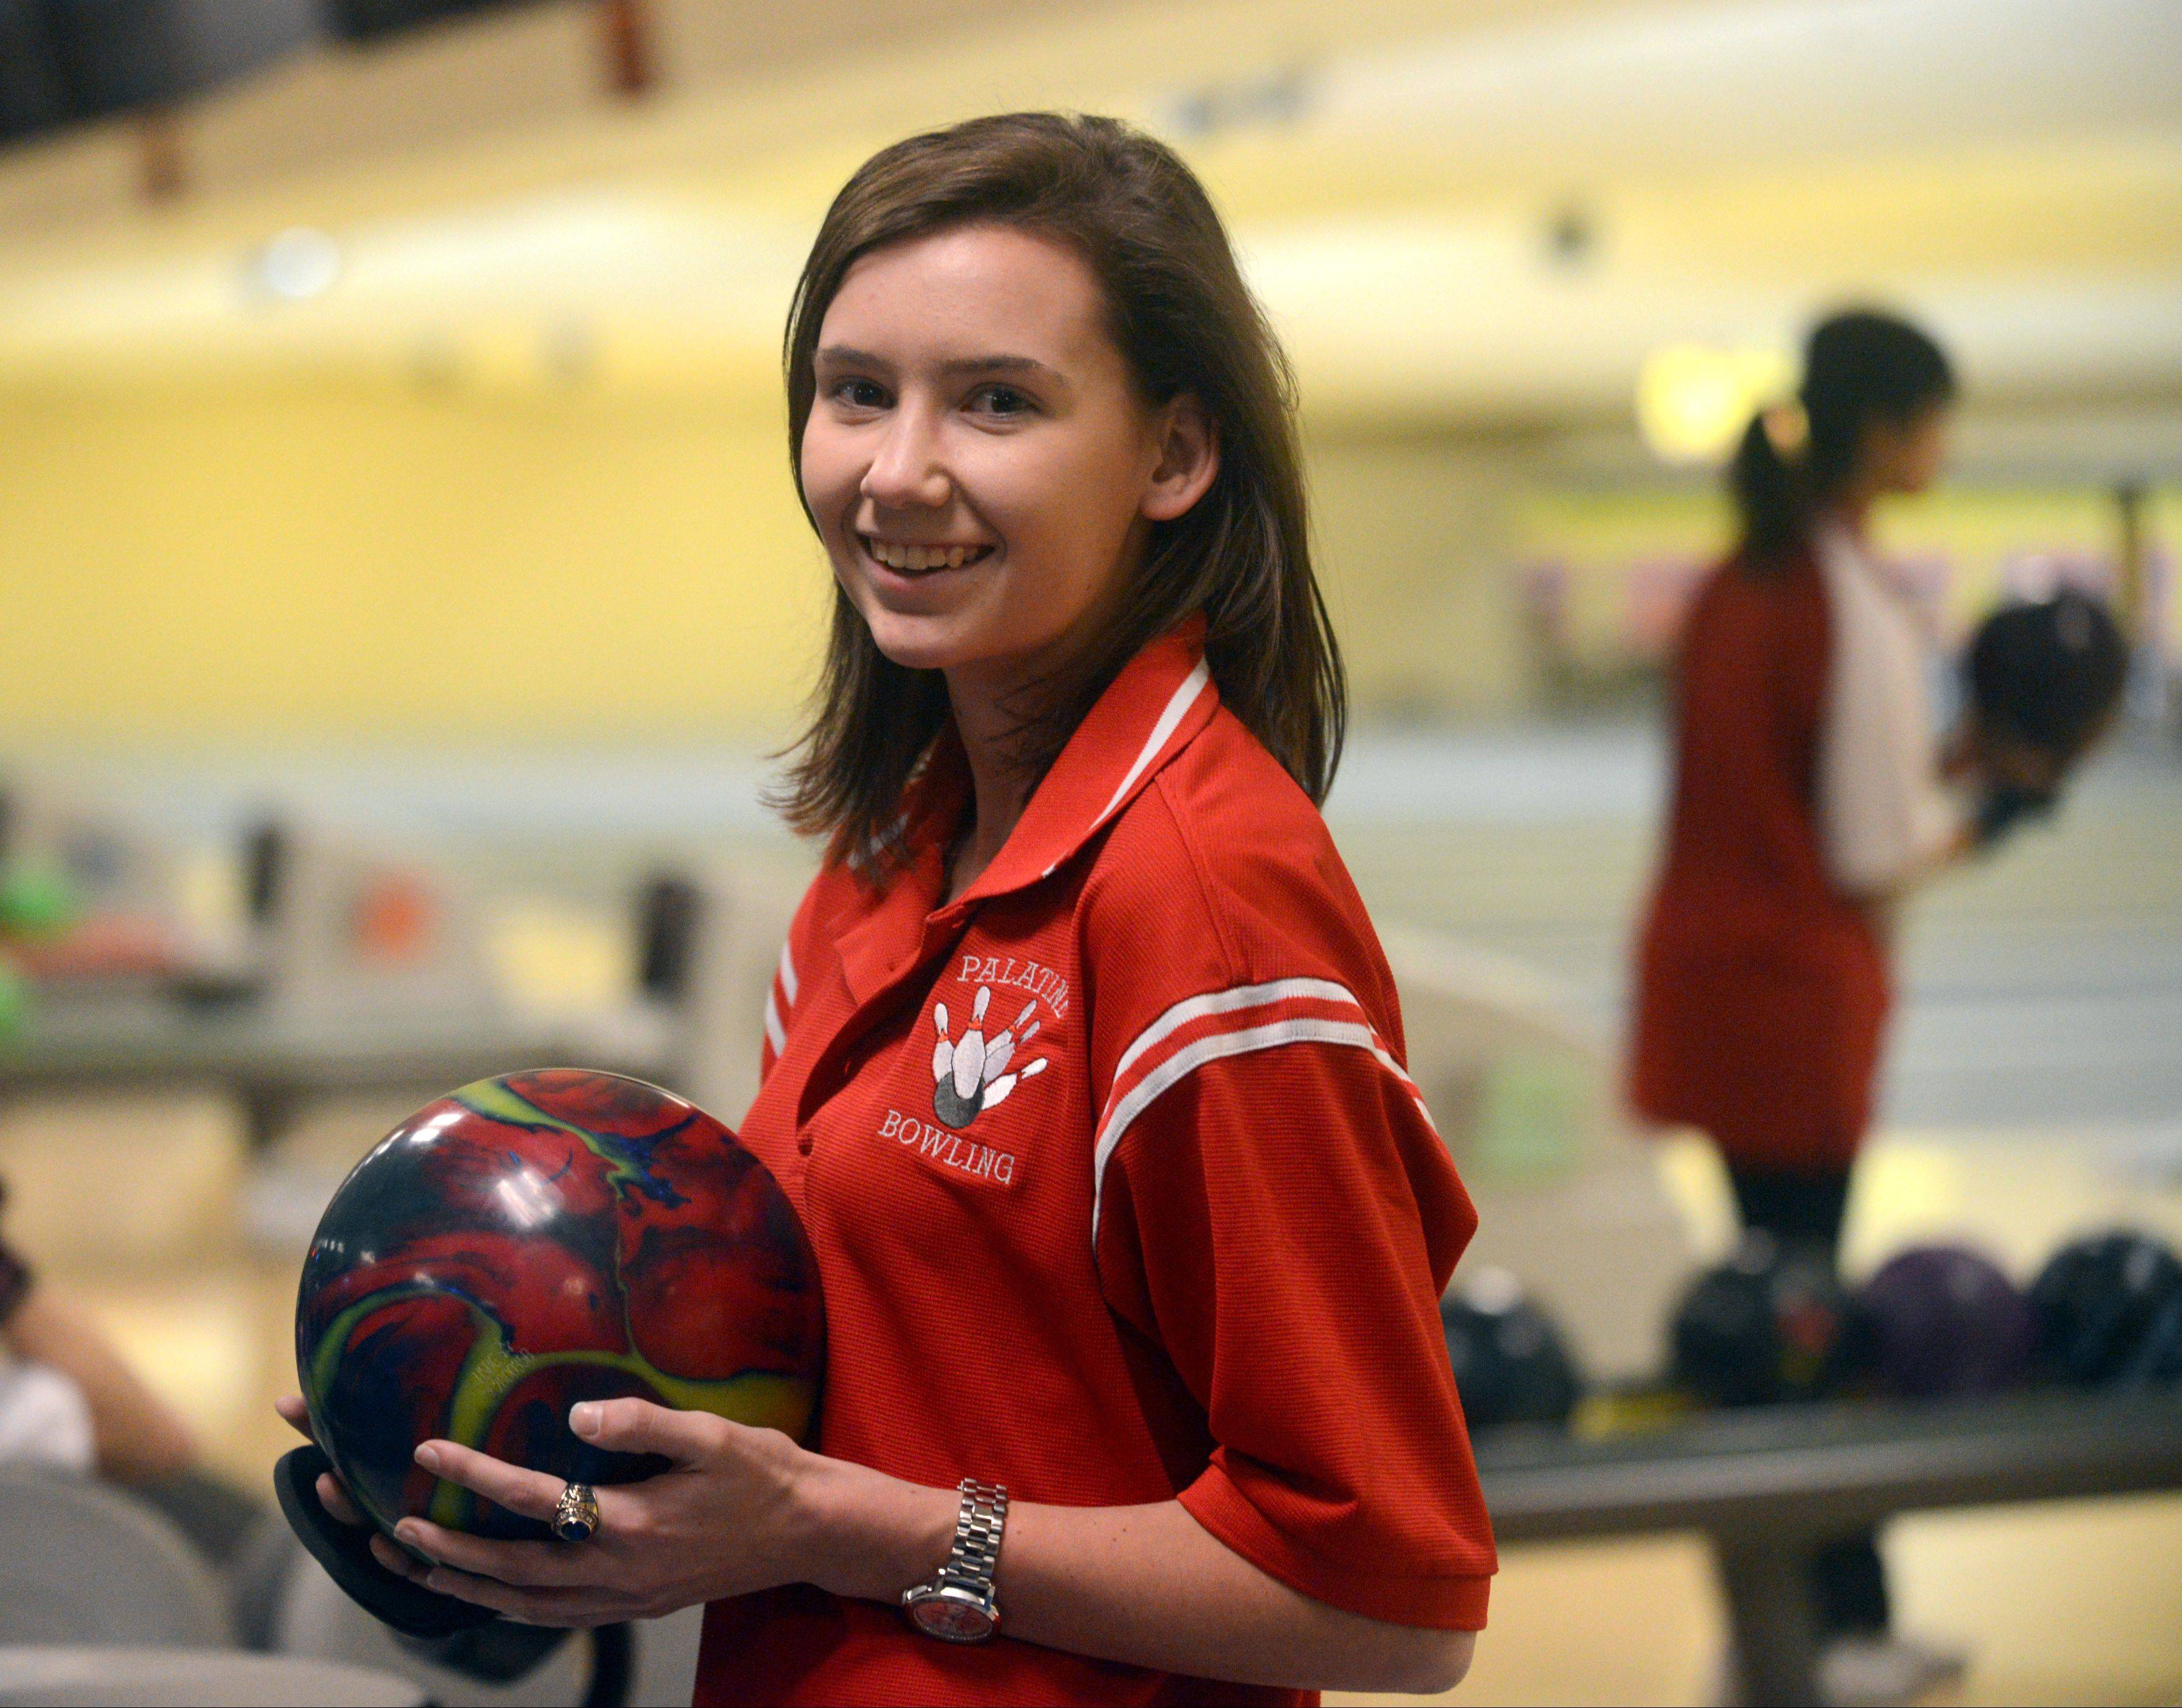 Katie Conrad is ready for her senior year at Palatine -- and her coach, teammates and teachers couldn't be happier she's returned to her hometown roots.